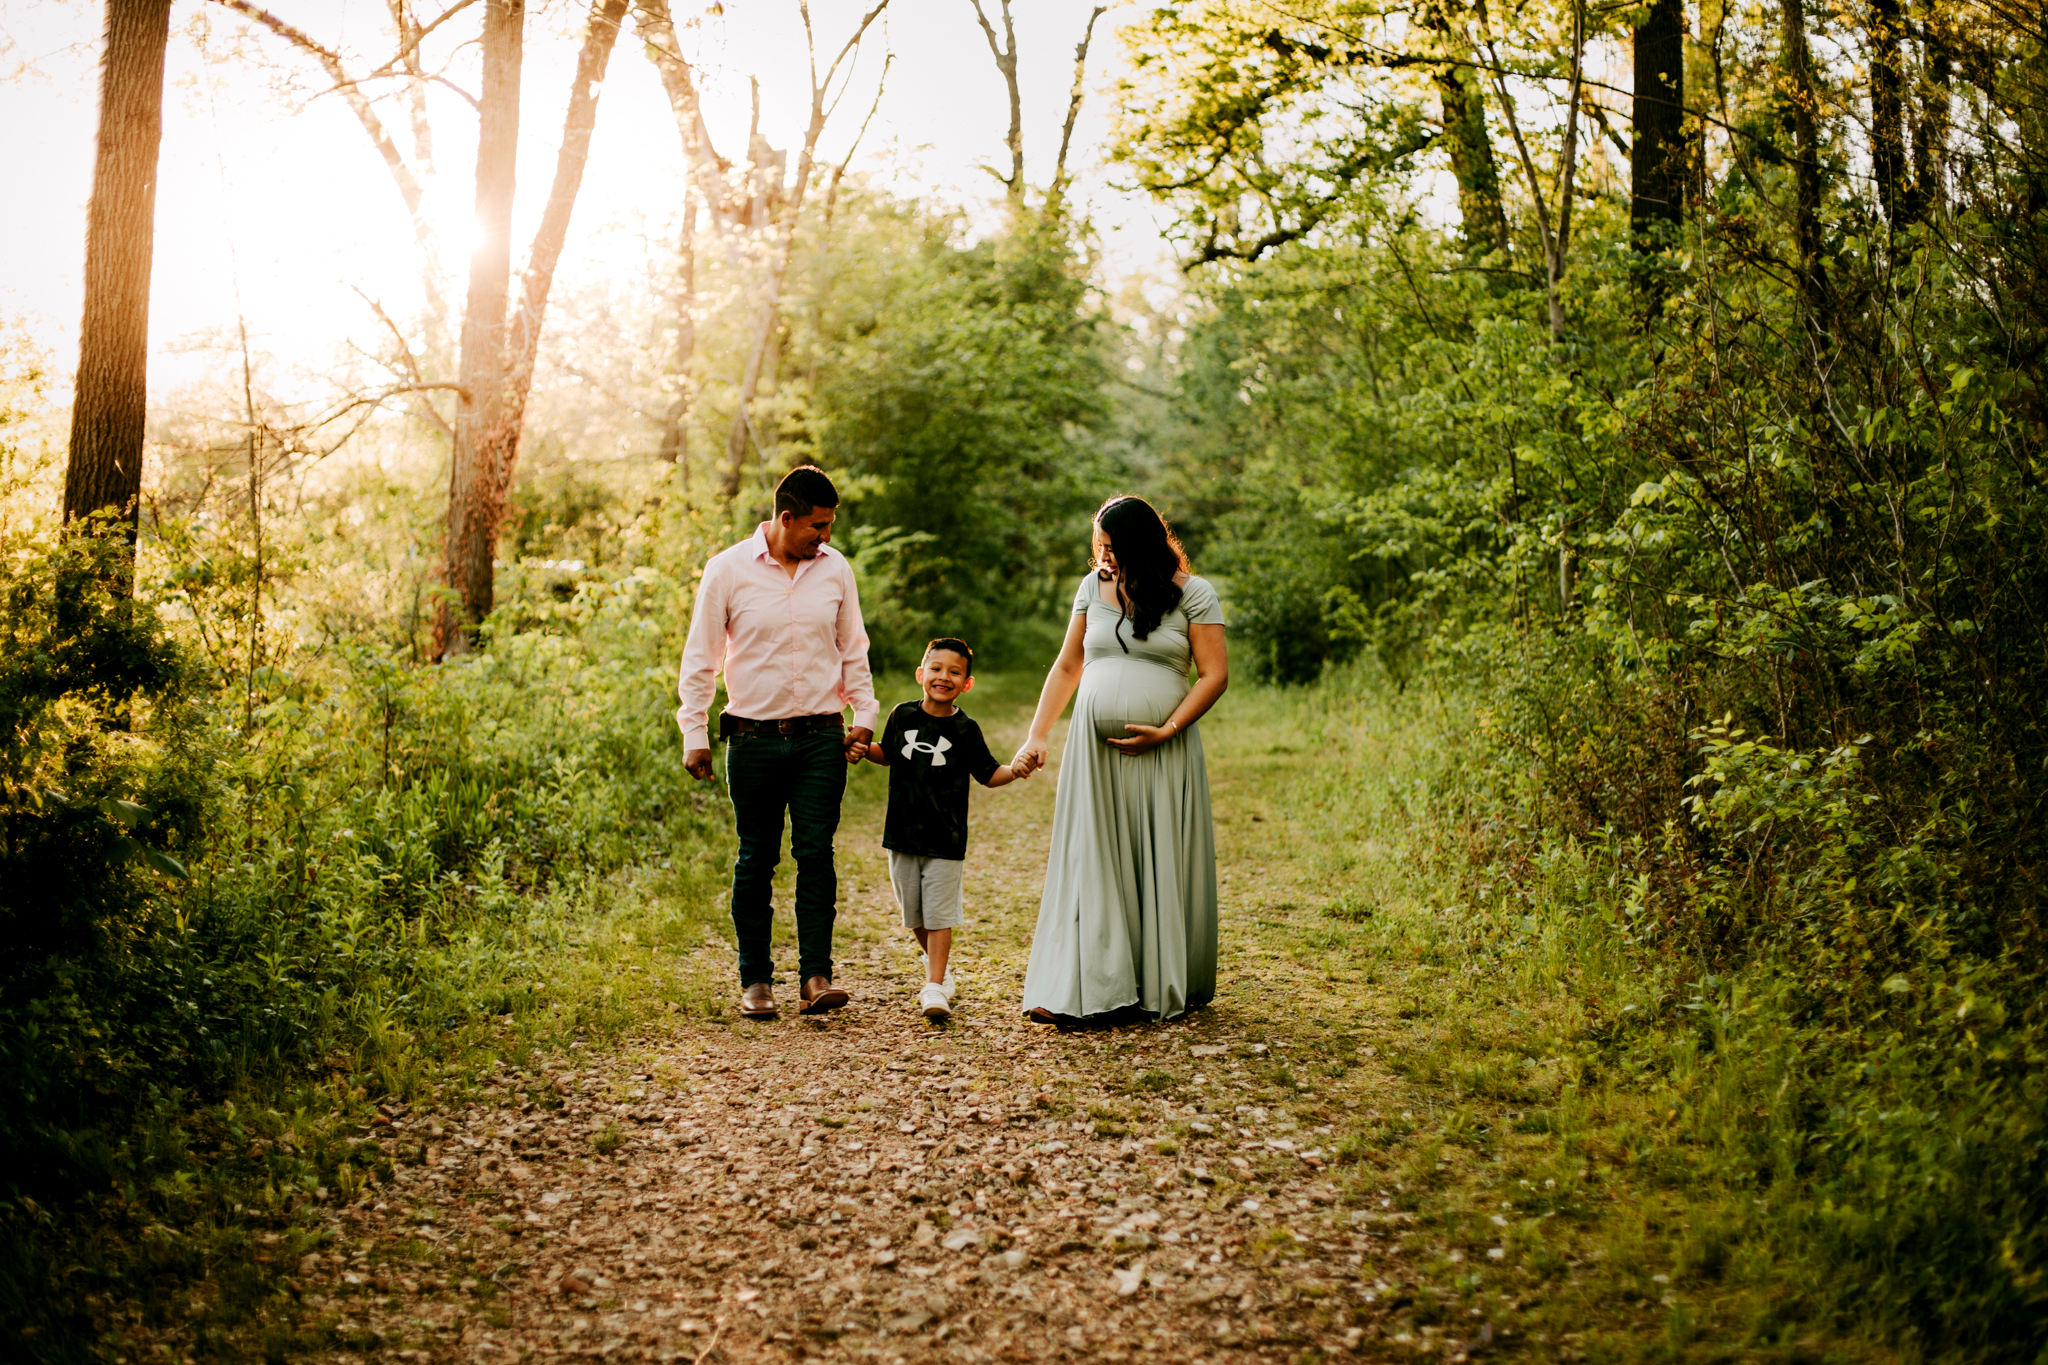 Family walking down dirt path while holding hands